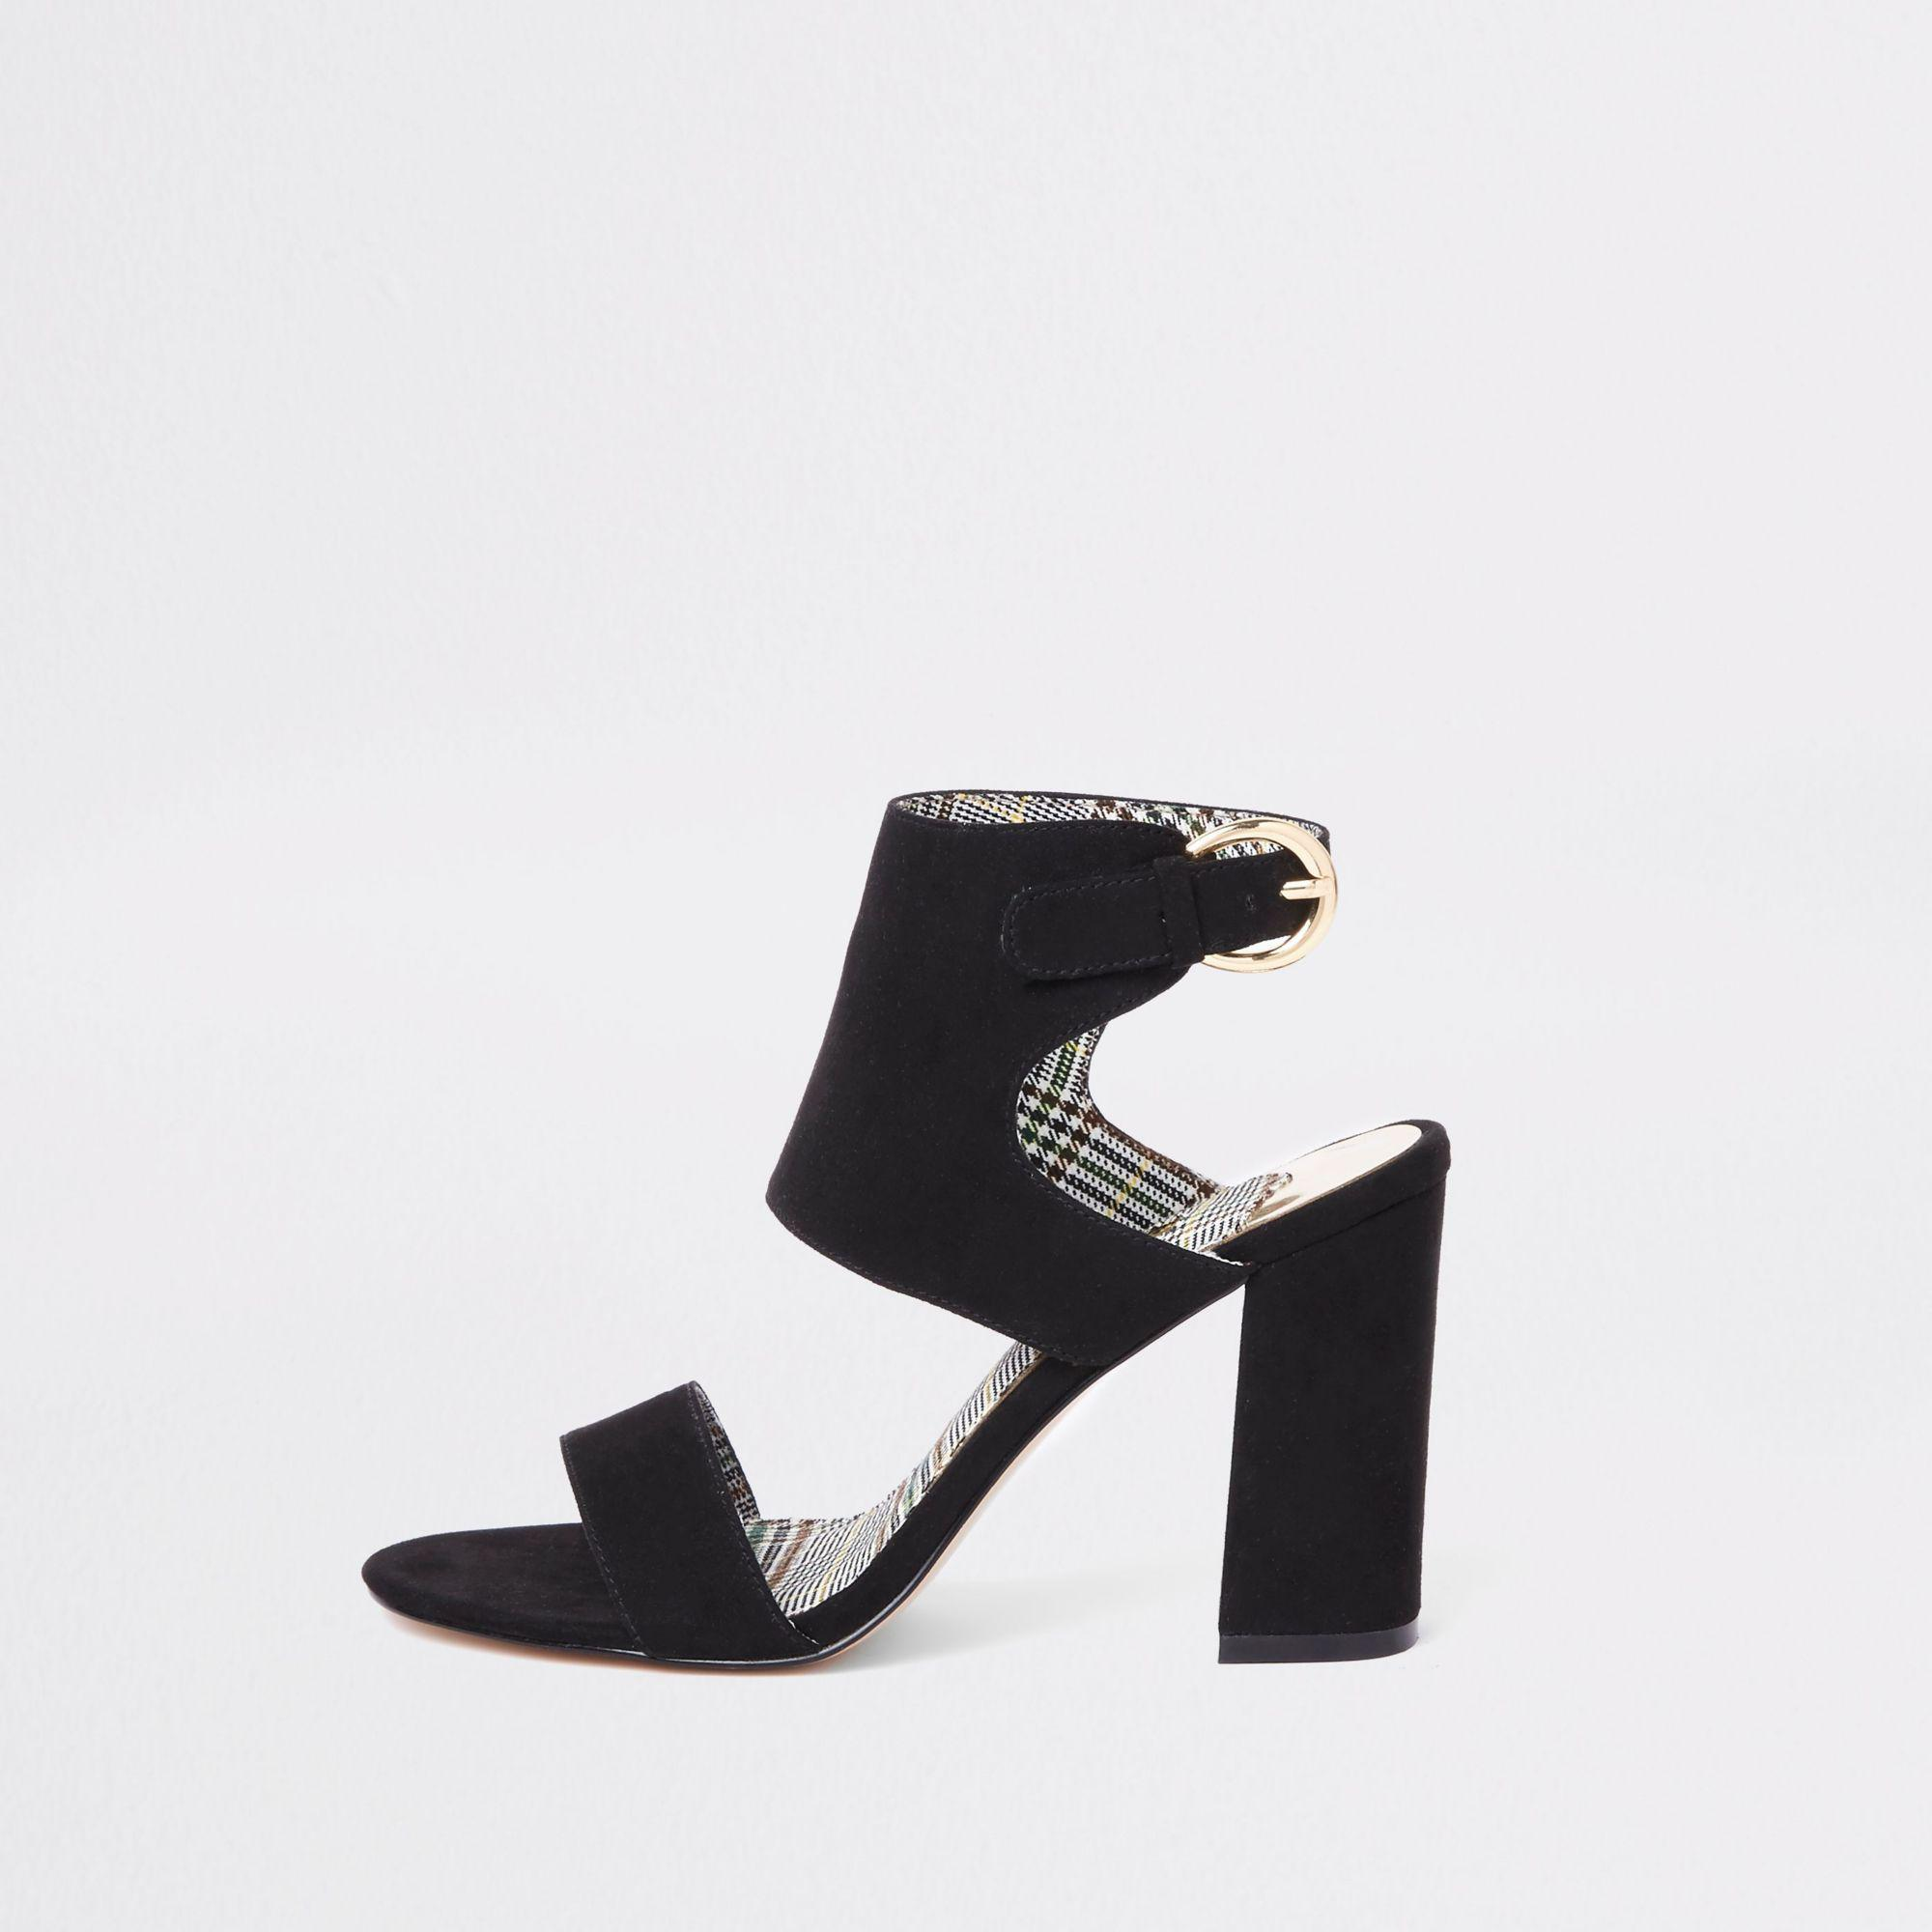 ad027ccf189 River Island Black Wide Fit Faux Suede Block Heel Sandals in Black ...